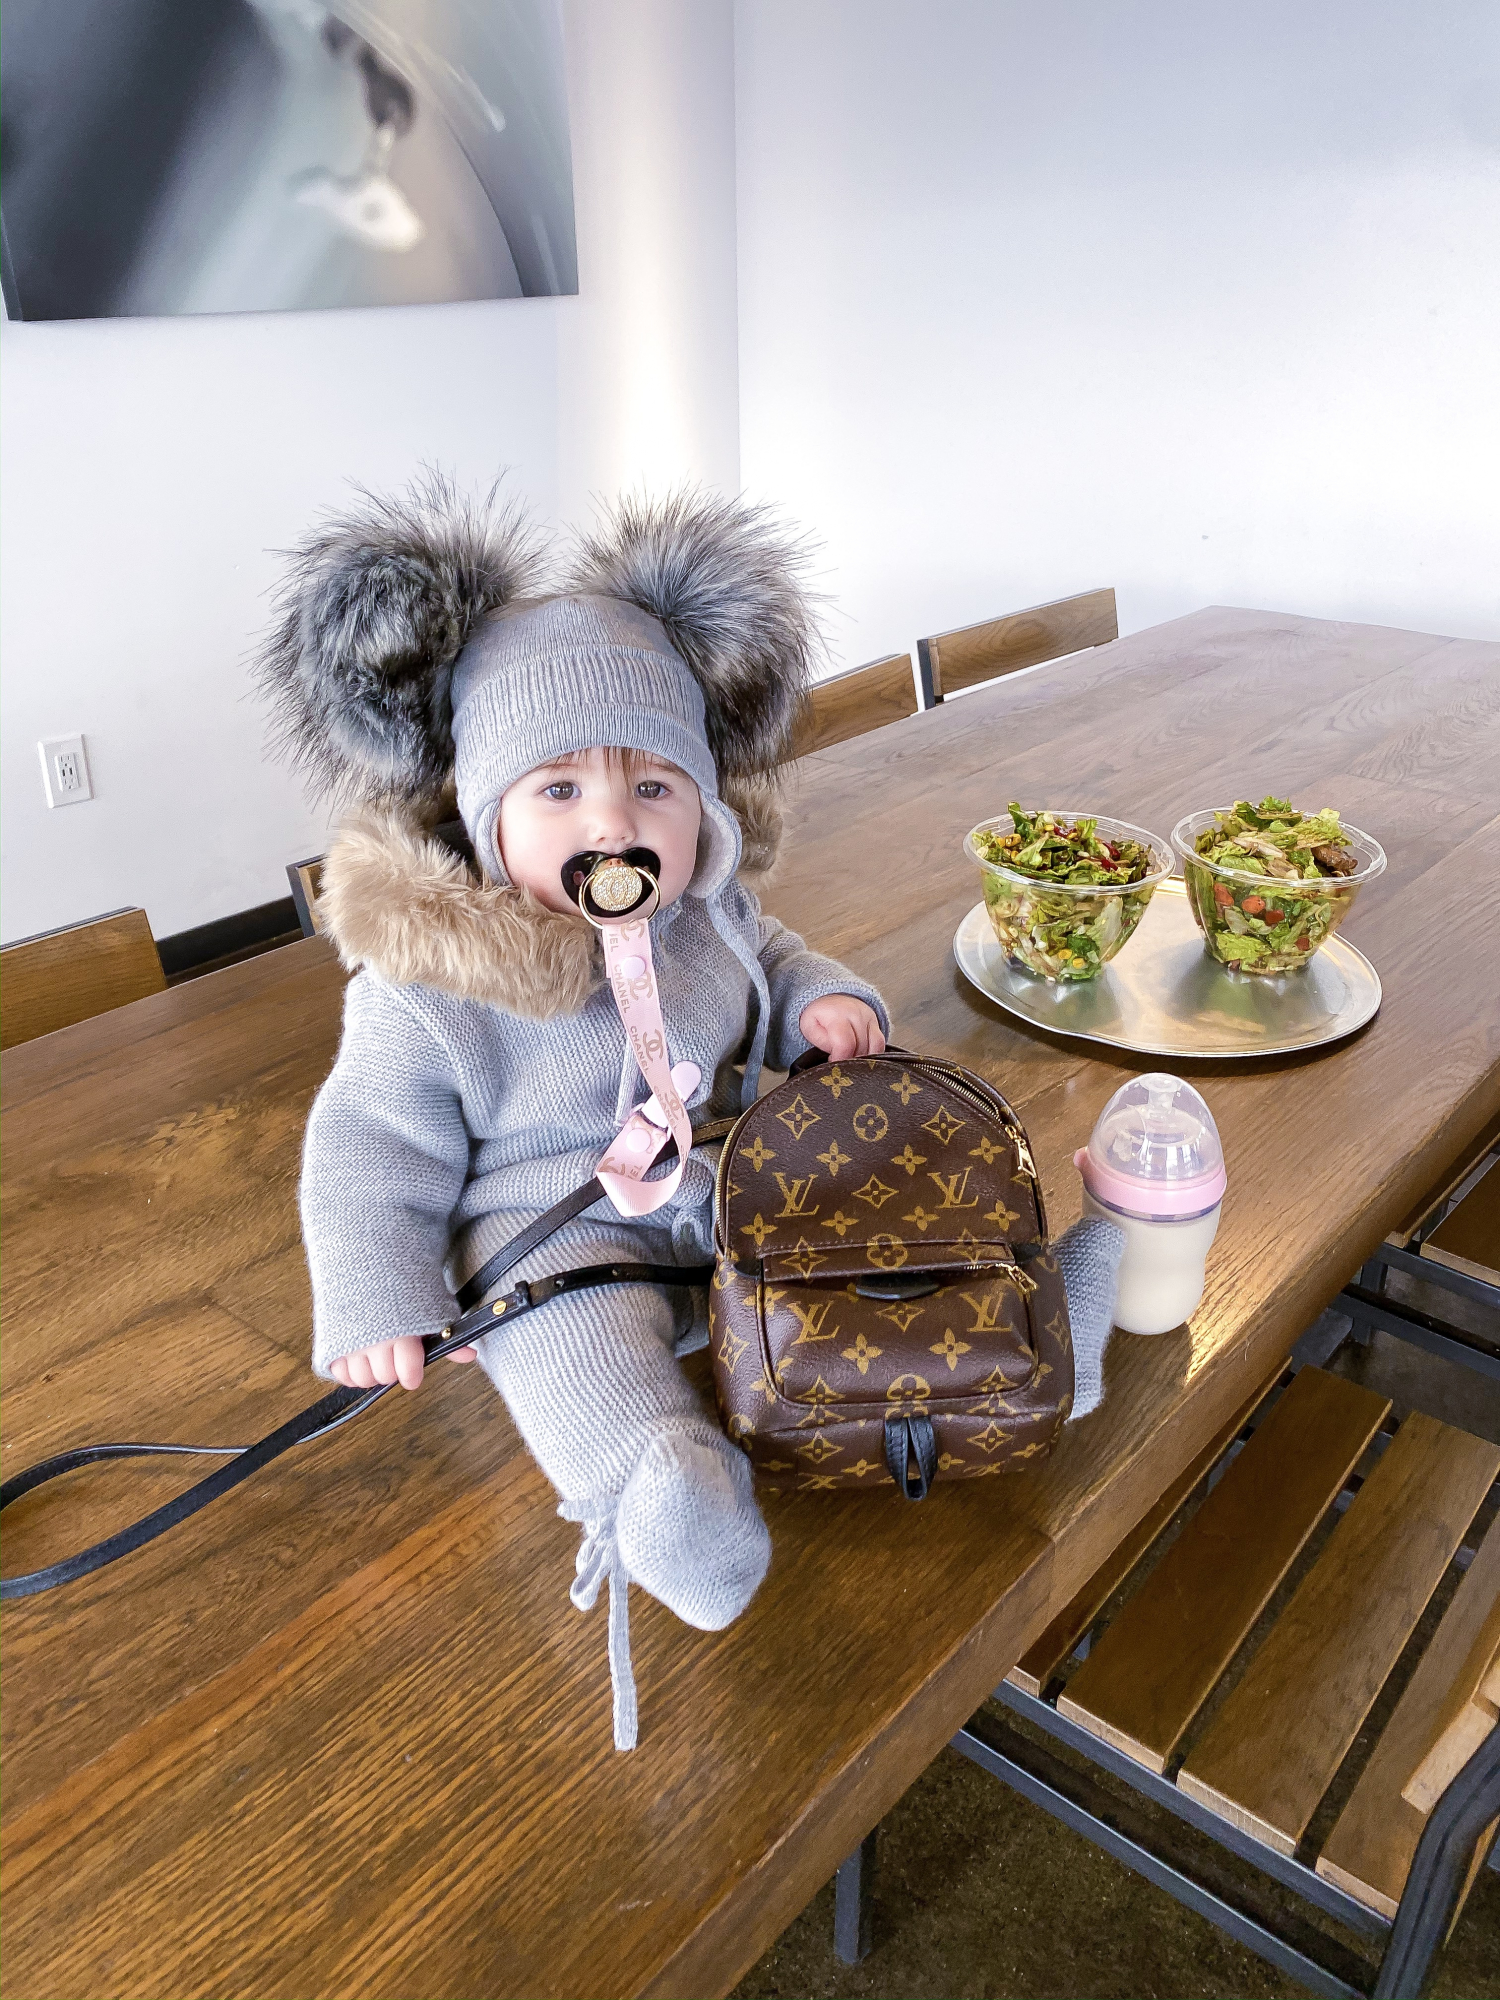 baby girl fashion pinterest, louis vuitton palm springs backpack | A YEAR IN REVIEW : MASSIVE 2019 INSTAGRAM RECAP by popular Oklahoma life and style blog, The Sweetest Thing: image of a baby sitting on a table next to some salad bowls and wearing a grey double pom-pom hat and holding a Louis Vuitton mini backpack.